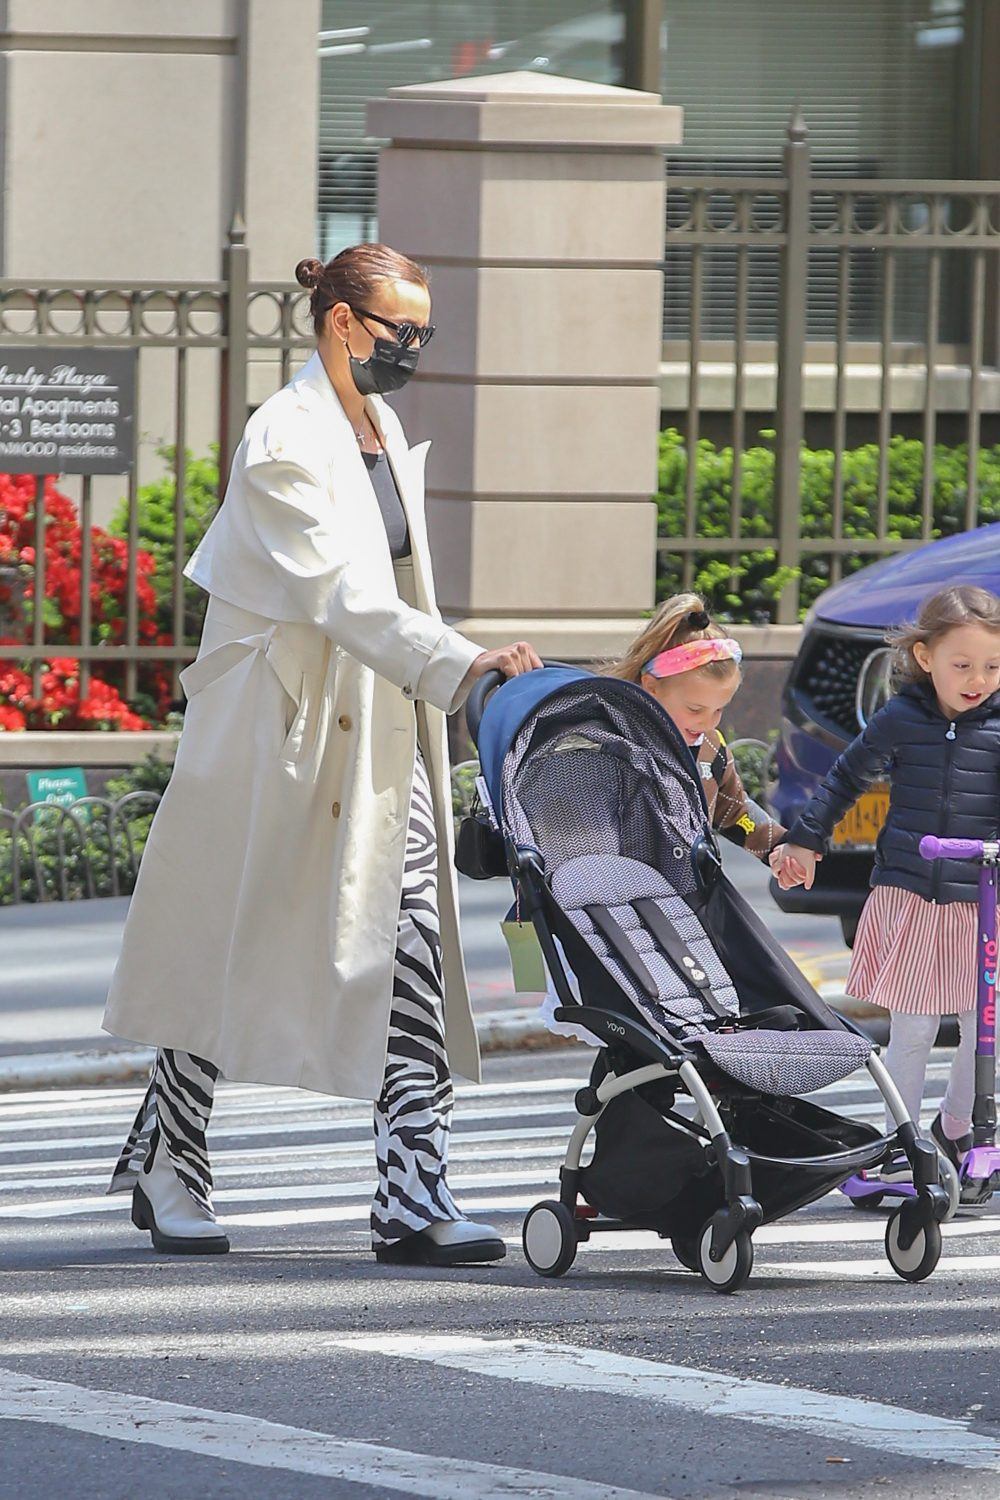 Model Irina Shayk and Daughter Lea Cooper seen taking a stroll together in New York City